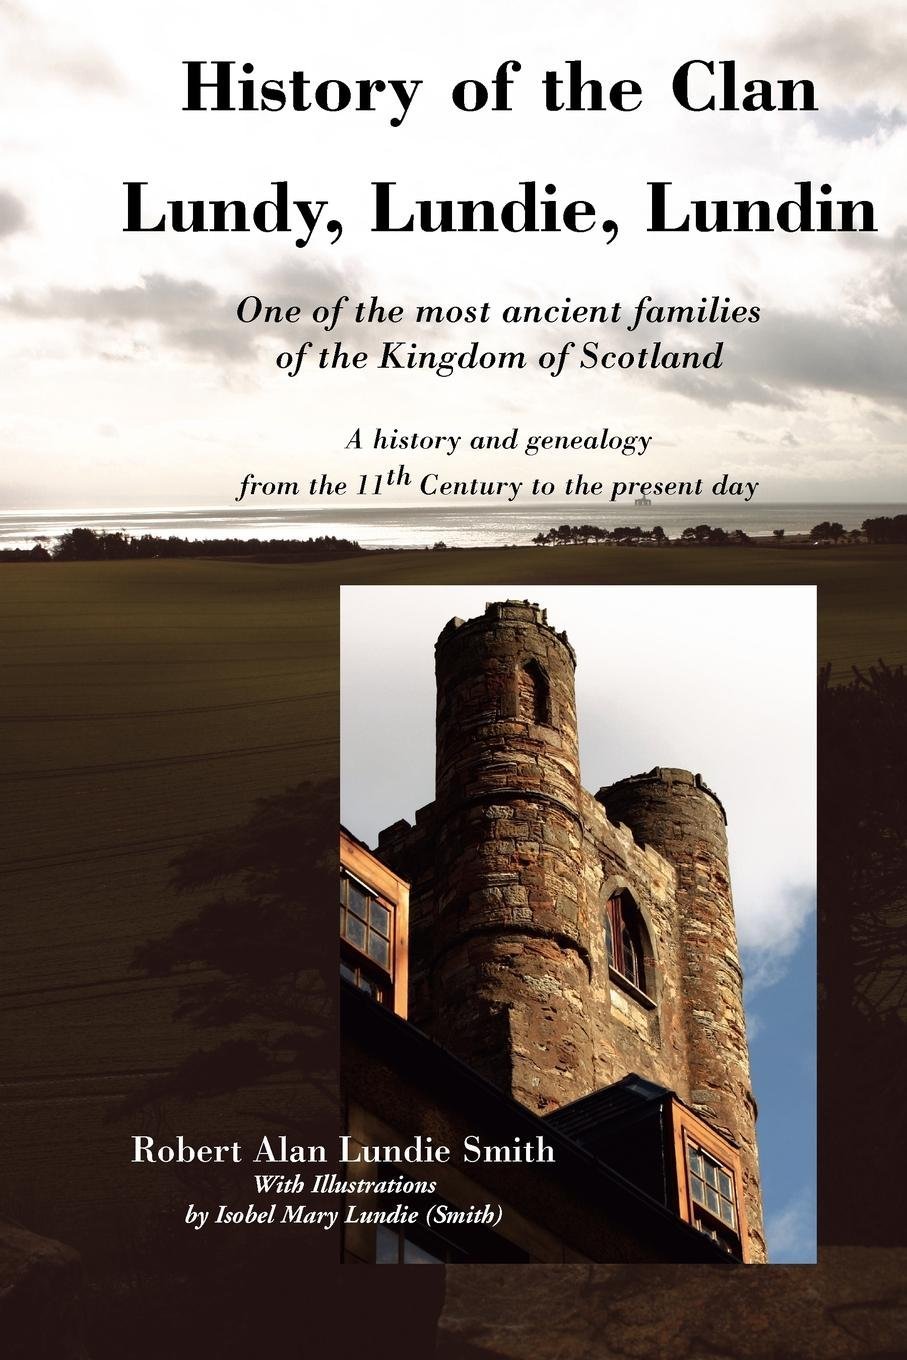 Download History of the Clan Lundy, Lundie, Lundin: One of the most ancient families of the Kingdom of Scotland: A history and genealogy from the 11th Century to the present day (Family Histories) PDF